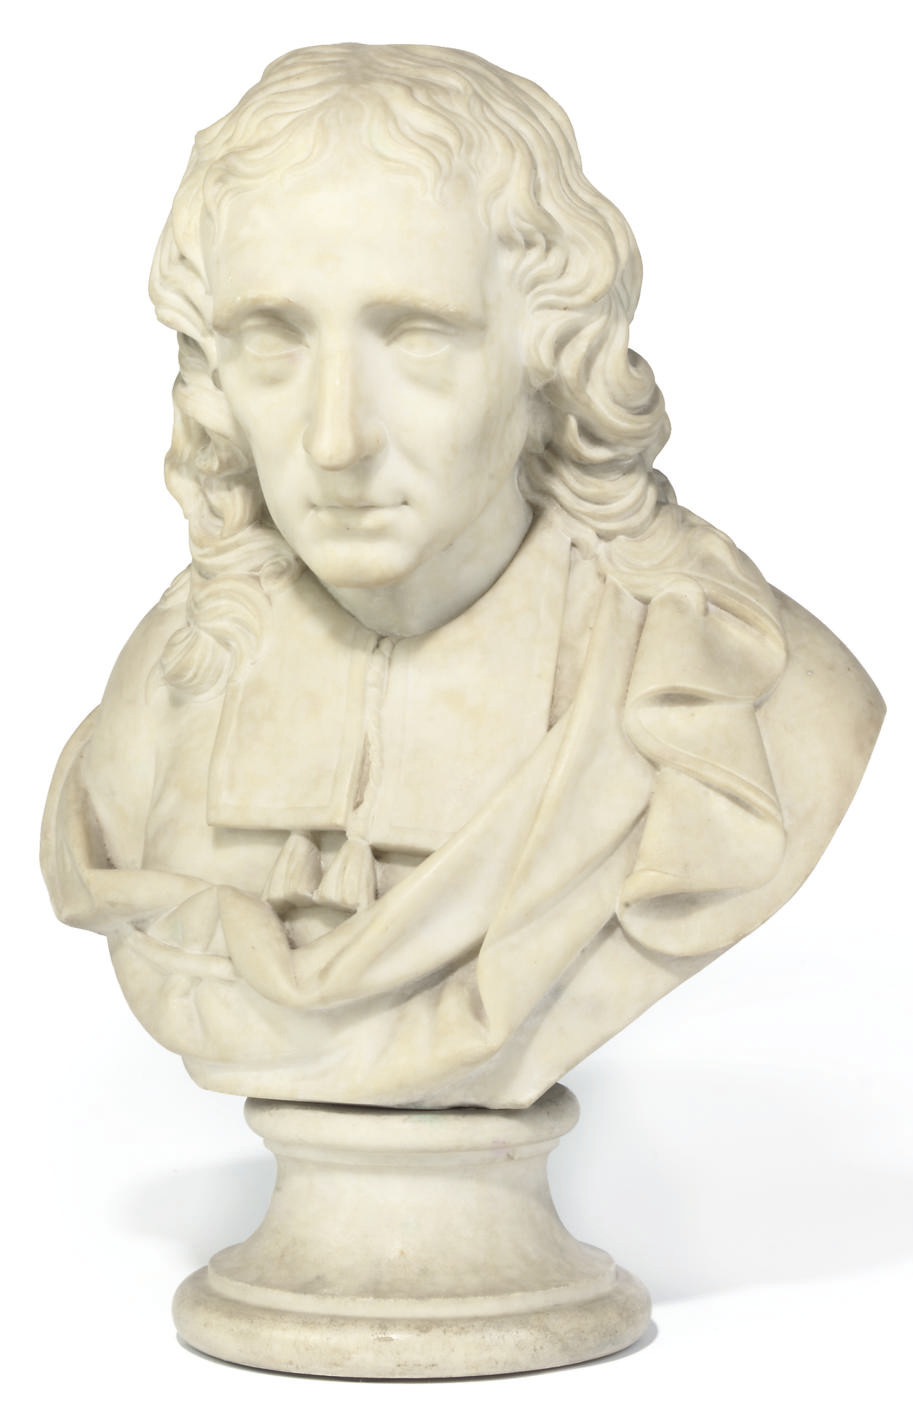 A WHITE MARBLE BUST OF MILTON